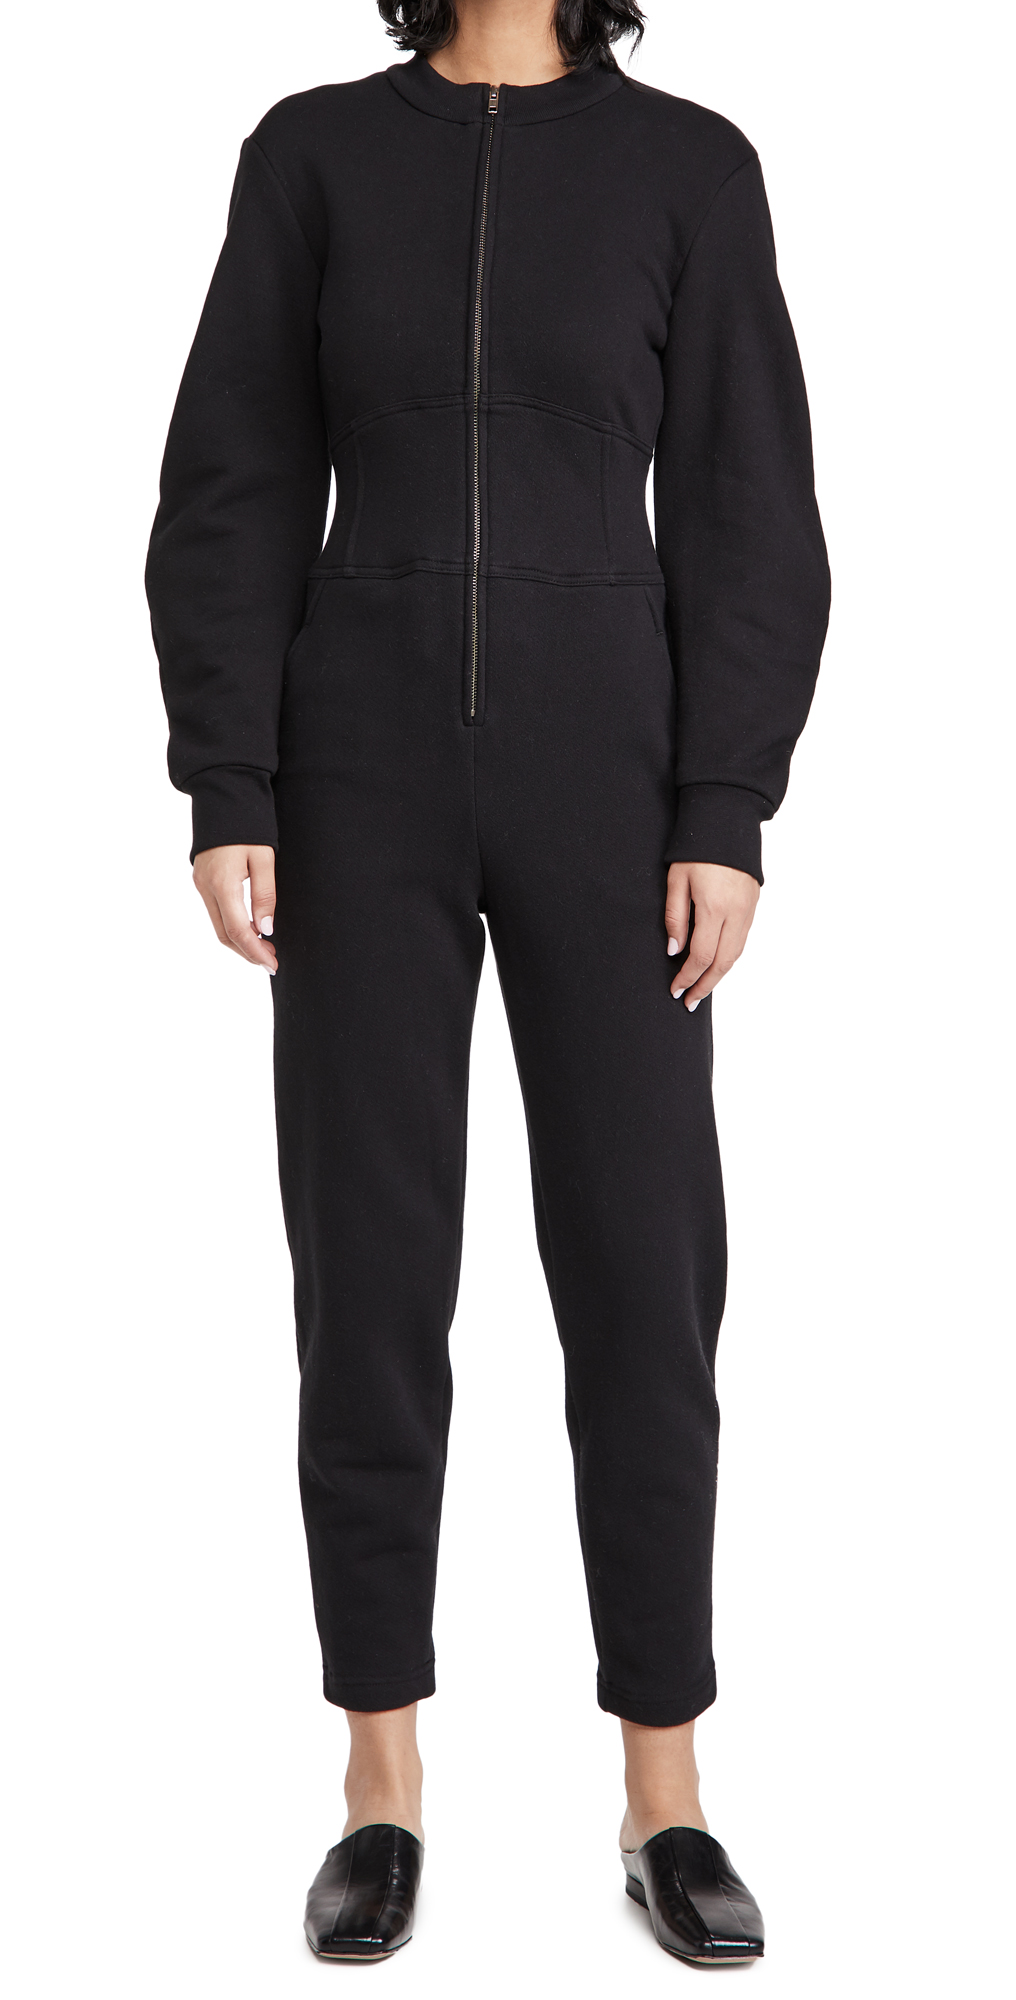 A.L.C. Evelyn Jumpsuit